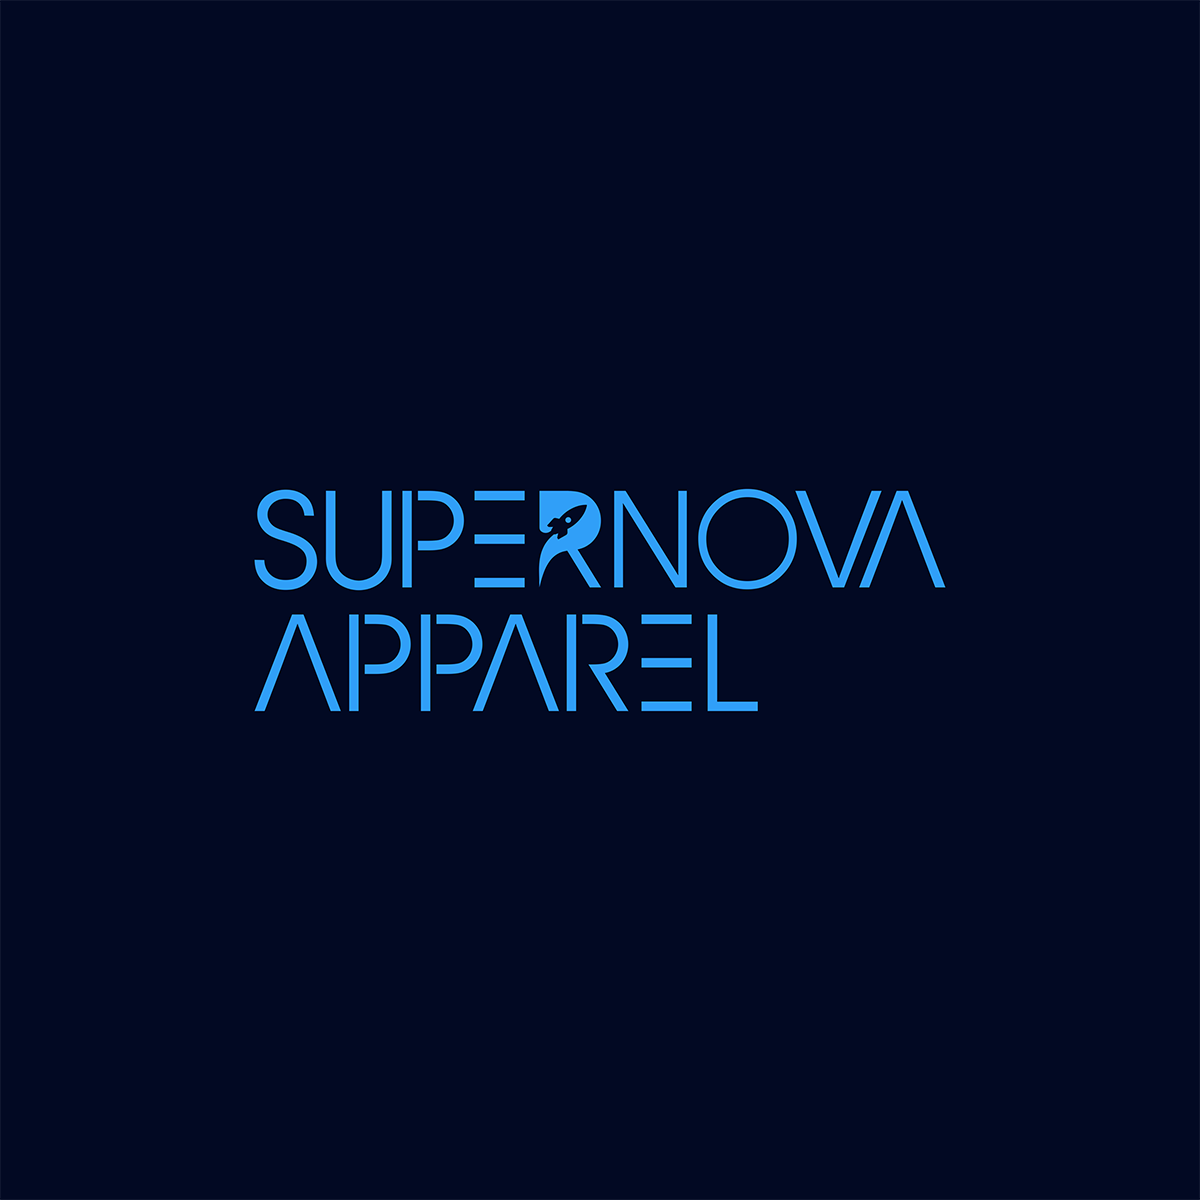 Supernova Apparel